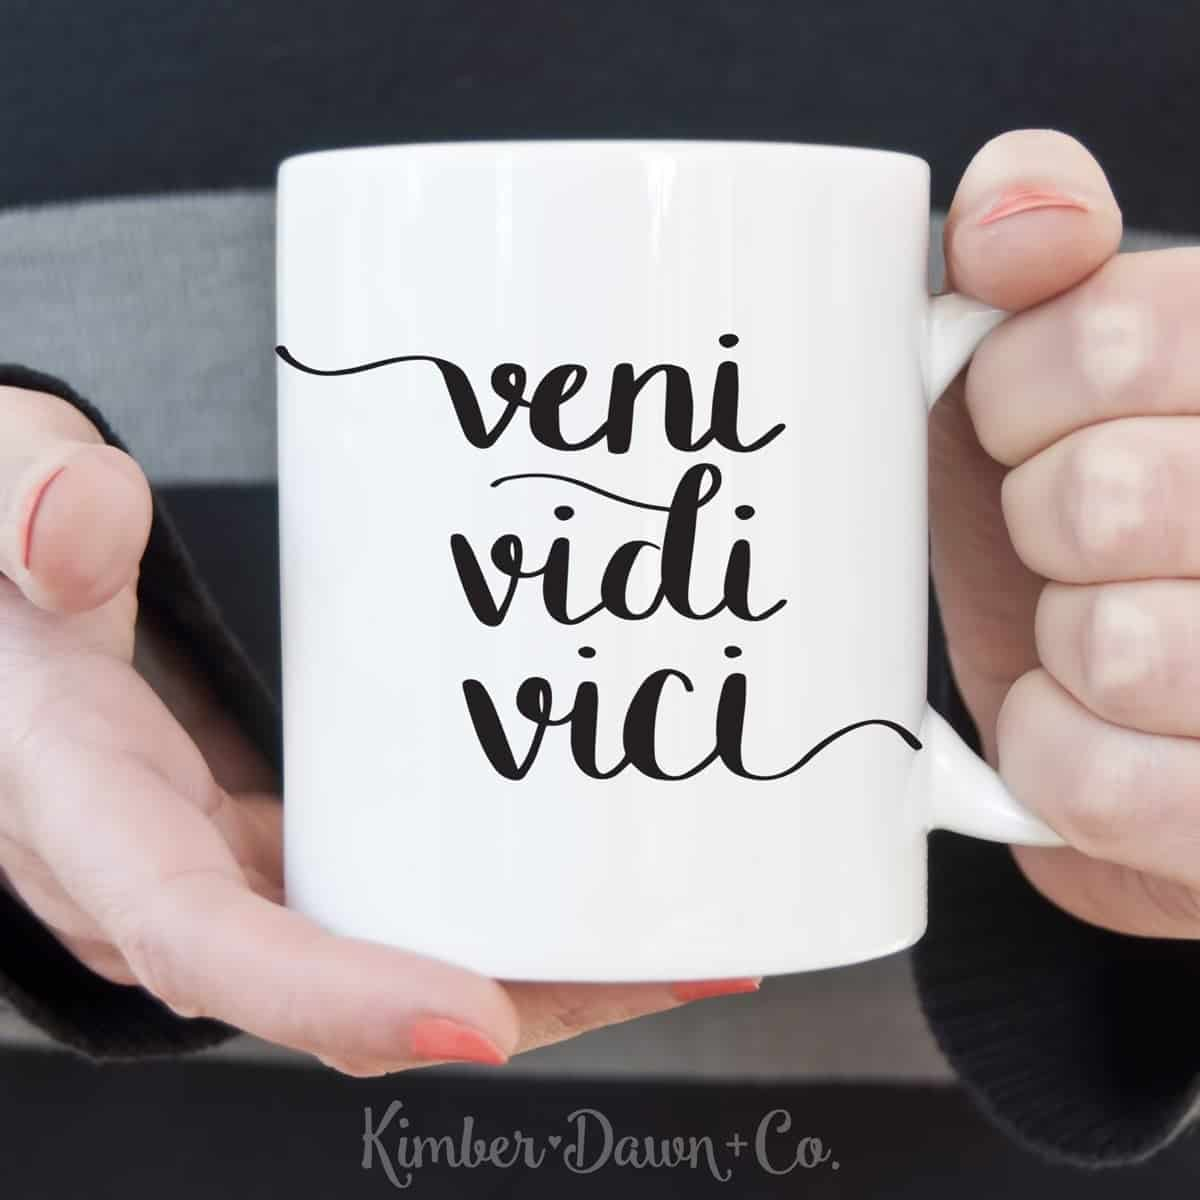 Veni Vidi Vici - Free Cut File for Silhouette CAMEO + Cricut crafts